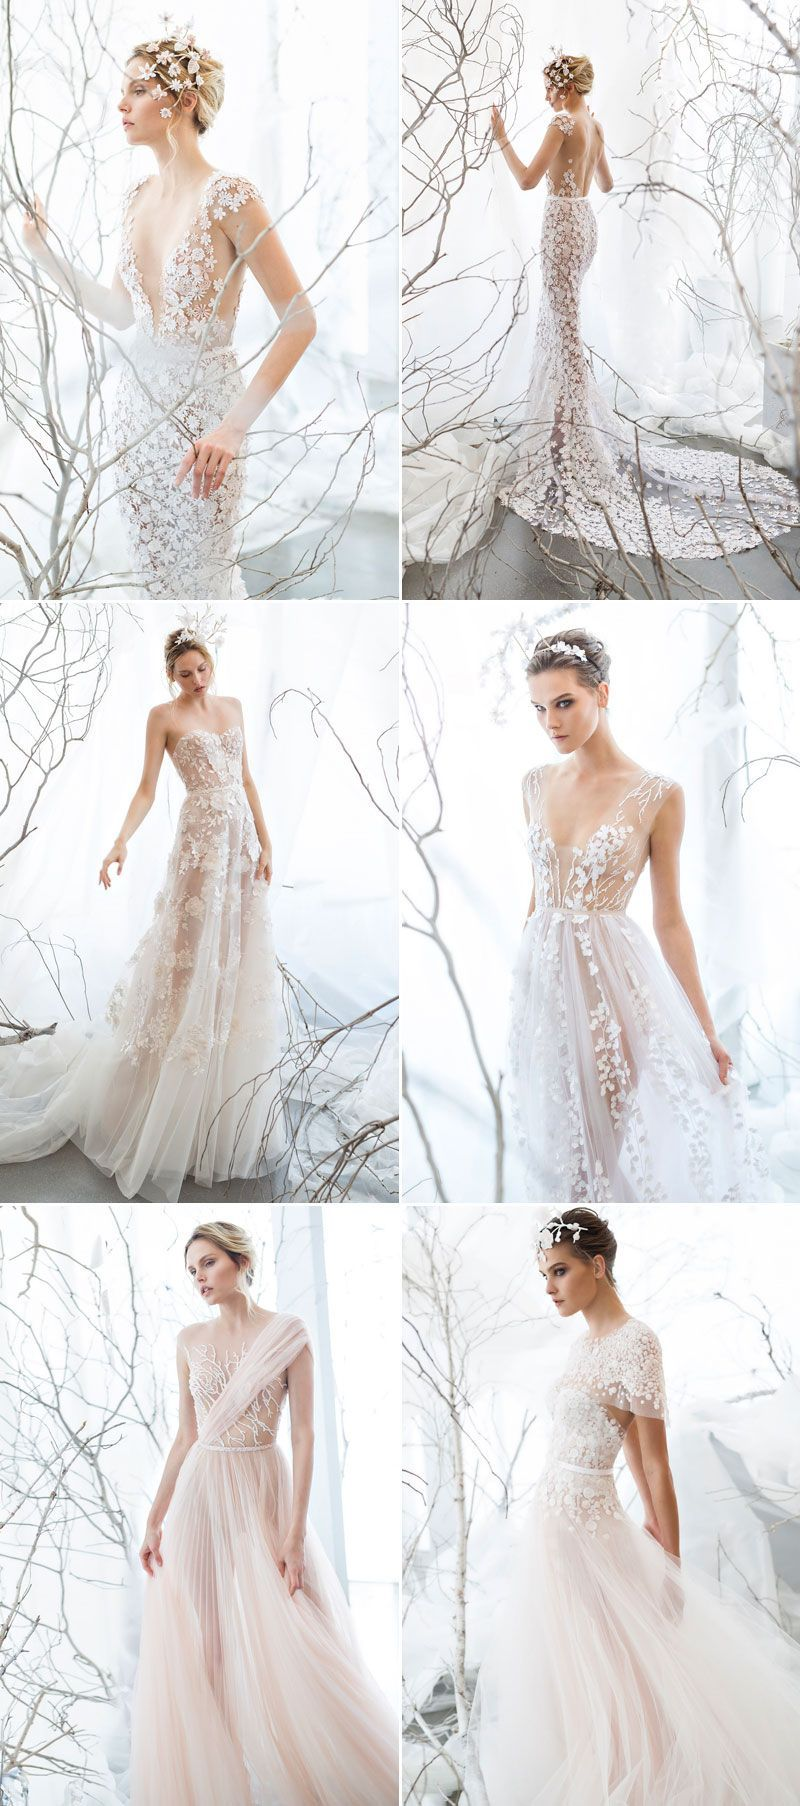 A whimsical take on the traditional wedding dress this elegant